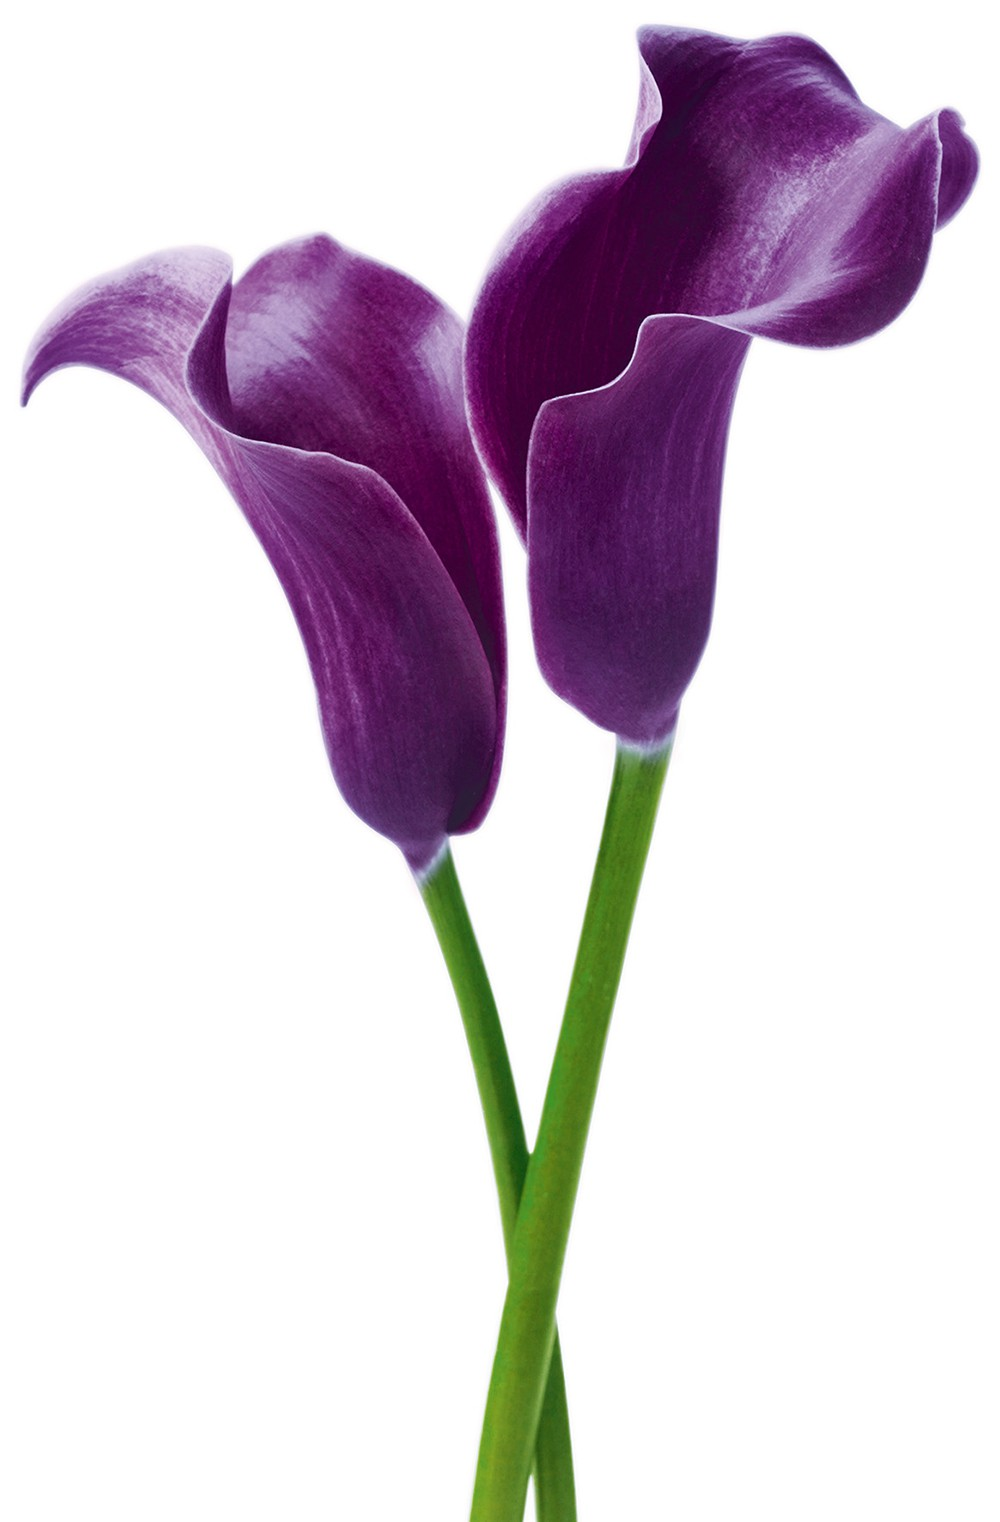 Juliste Giant Art 00675 Purple Calla Lilies 115x175 cm